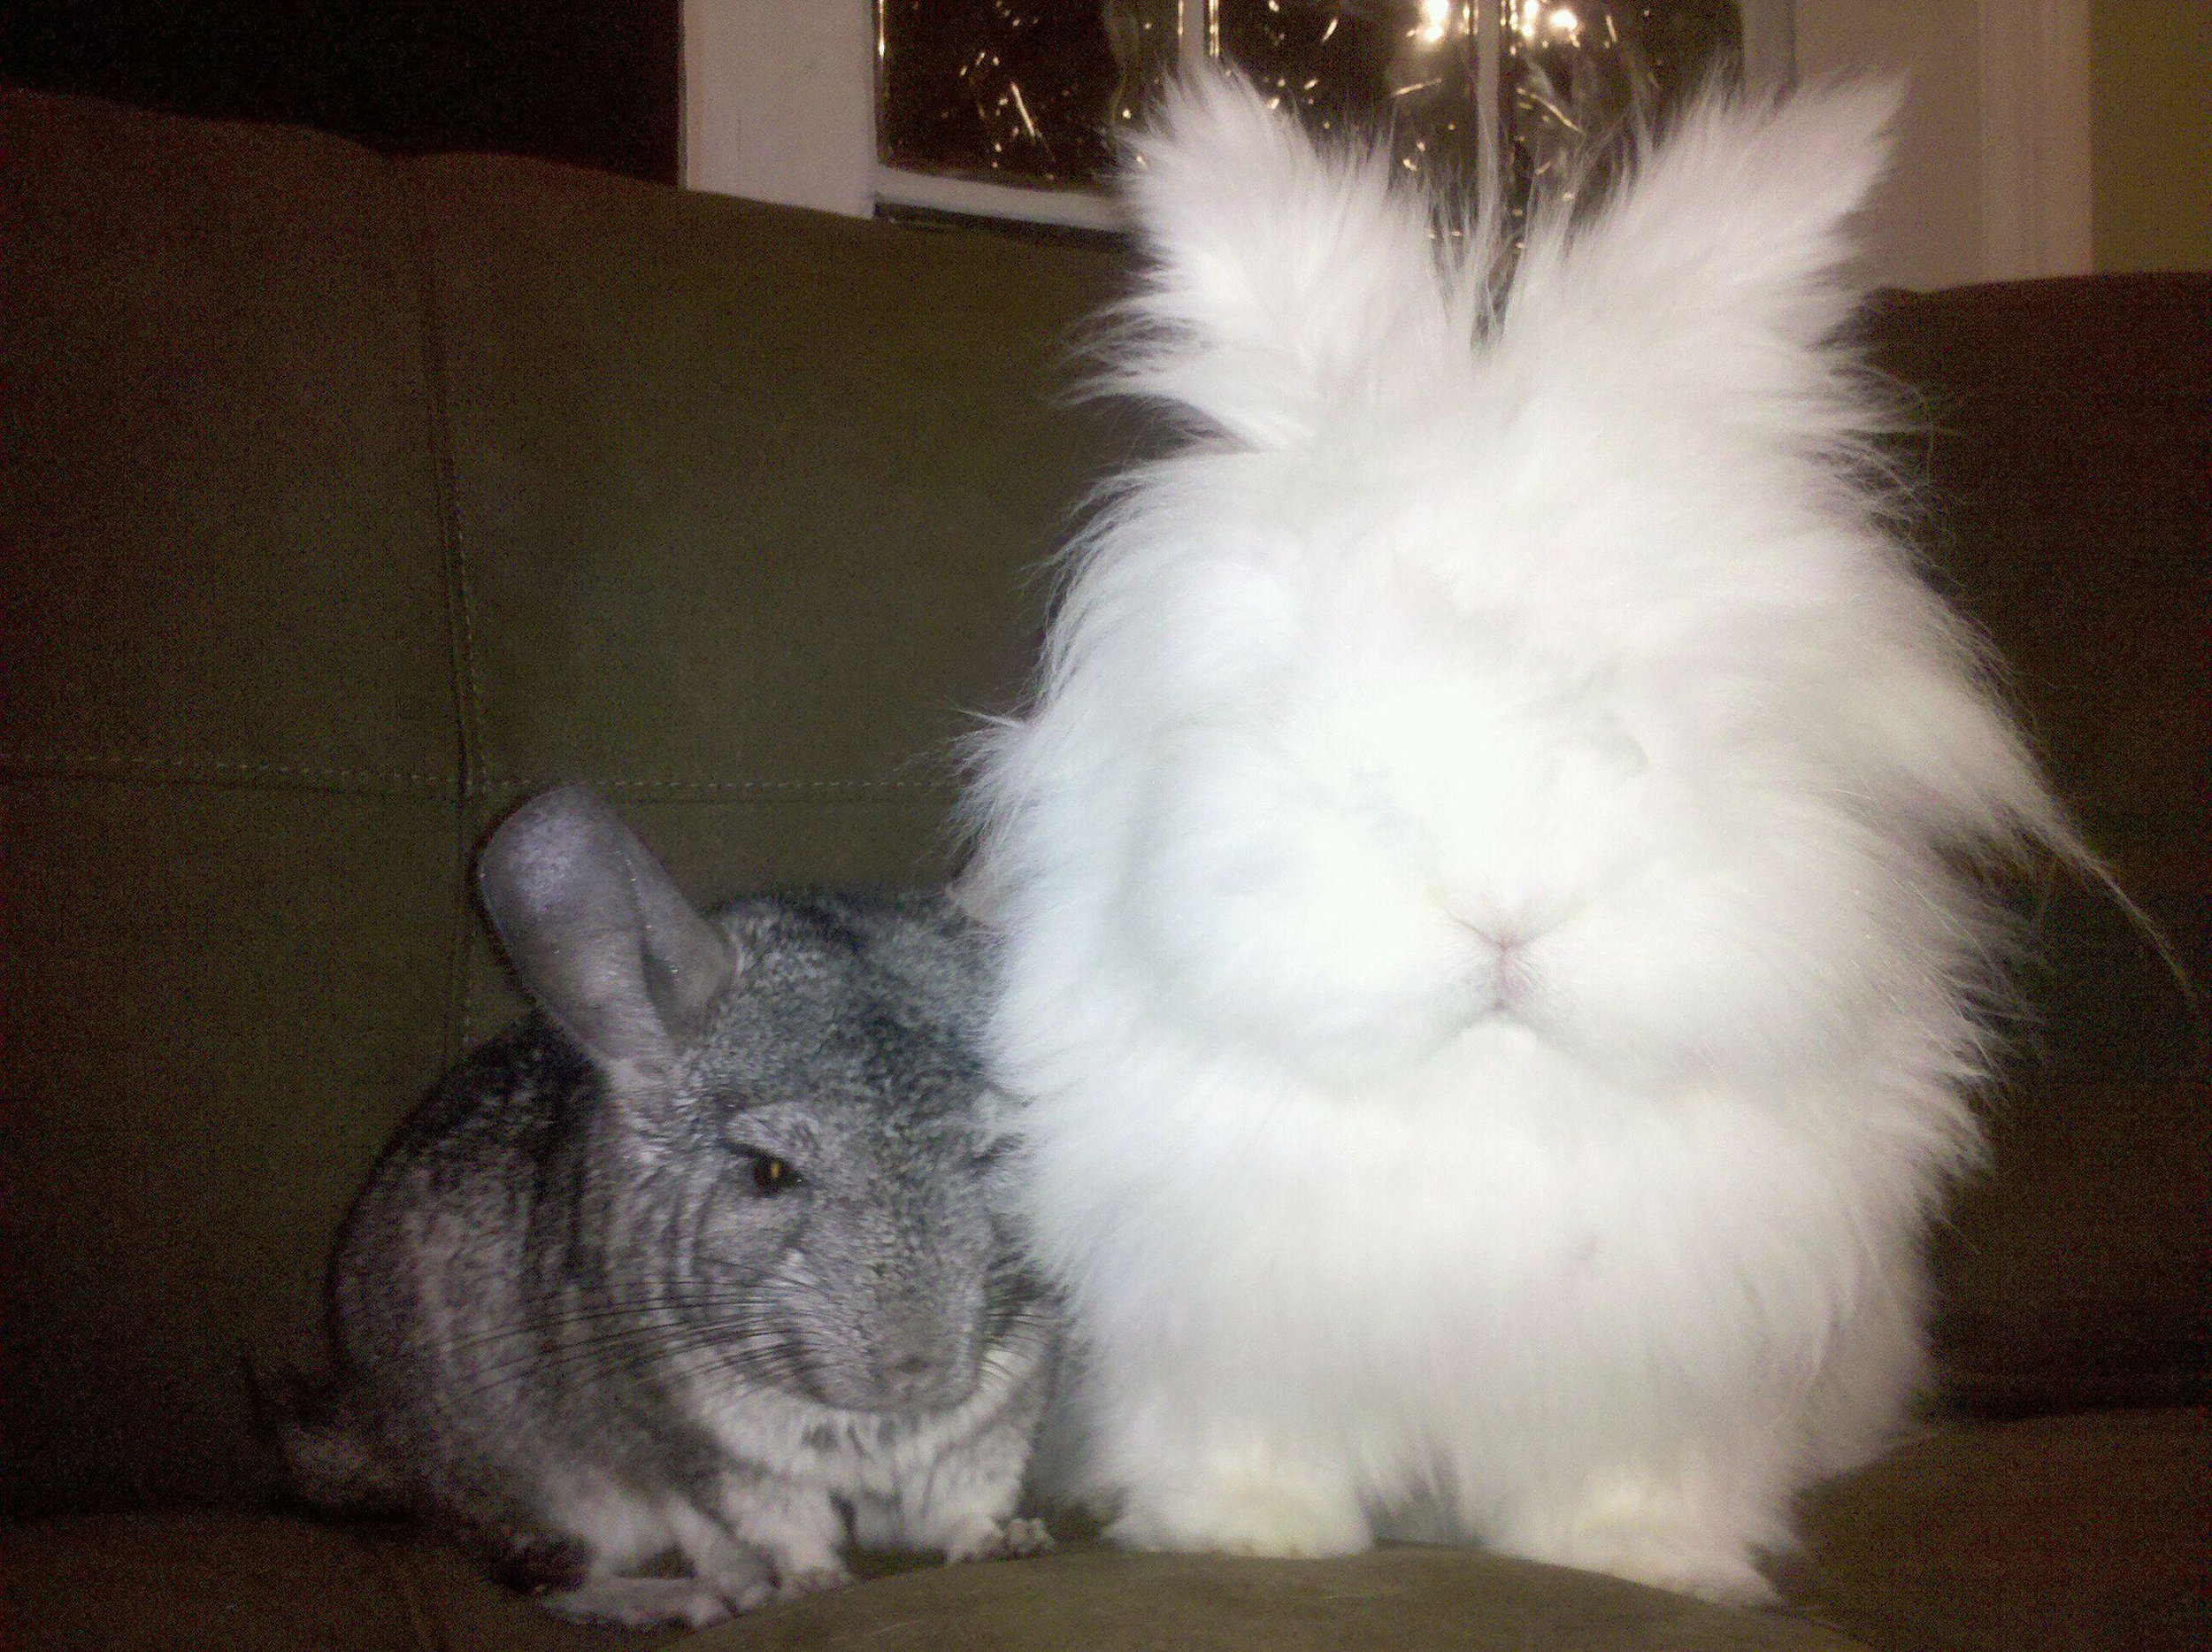 Fluffy Bunny and His Chinchilla Friend Sit Together Quietly